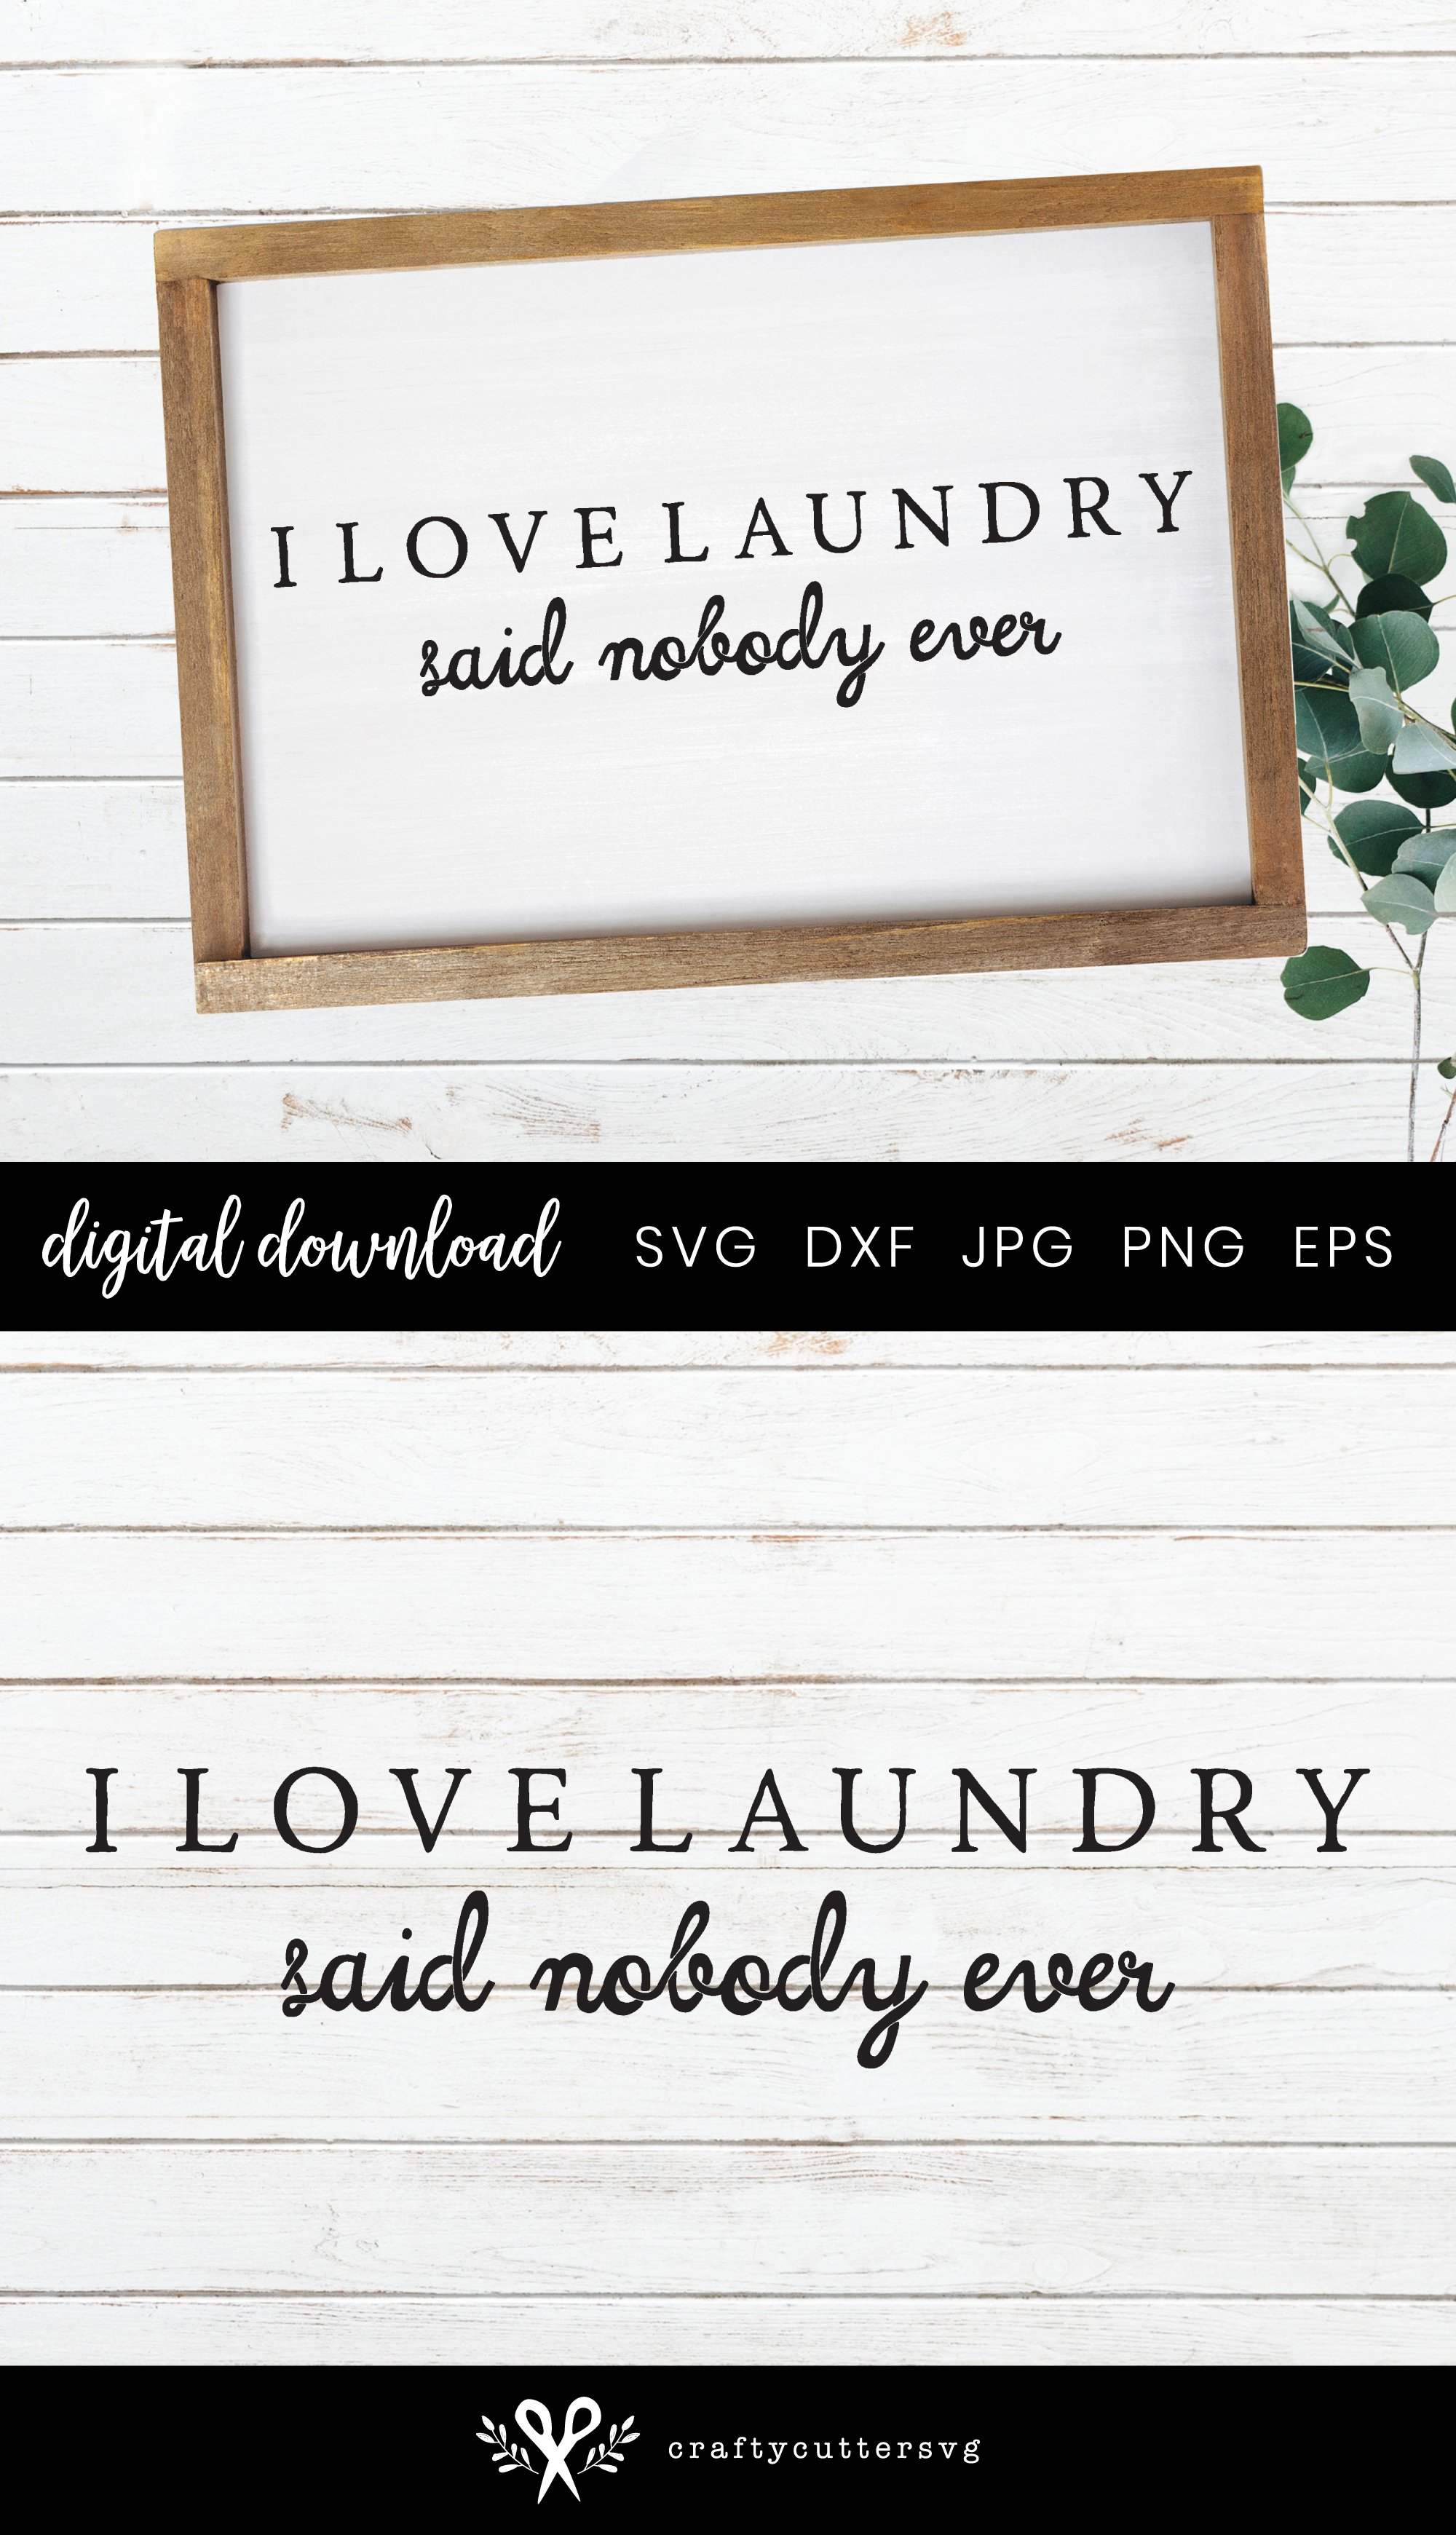 I love Laundry | Farmhouse Laundry Room Sign SVG example image 3